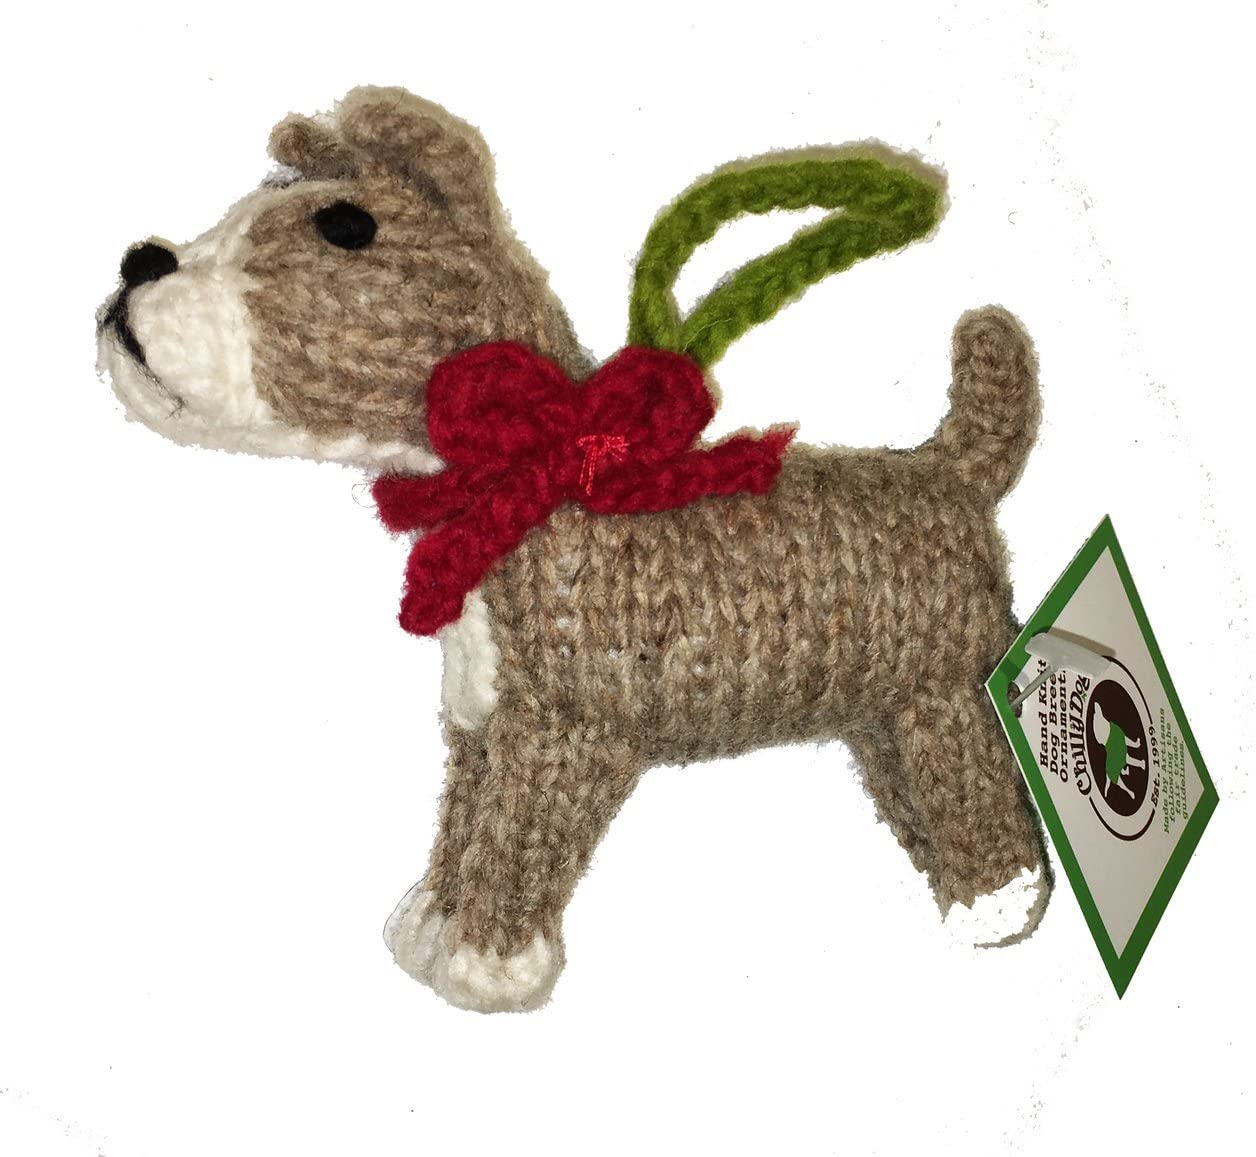 Chilly Dog Hand Knit Wool Chocolate Lab Ornament